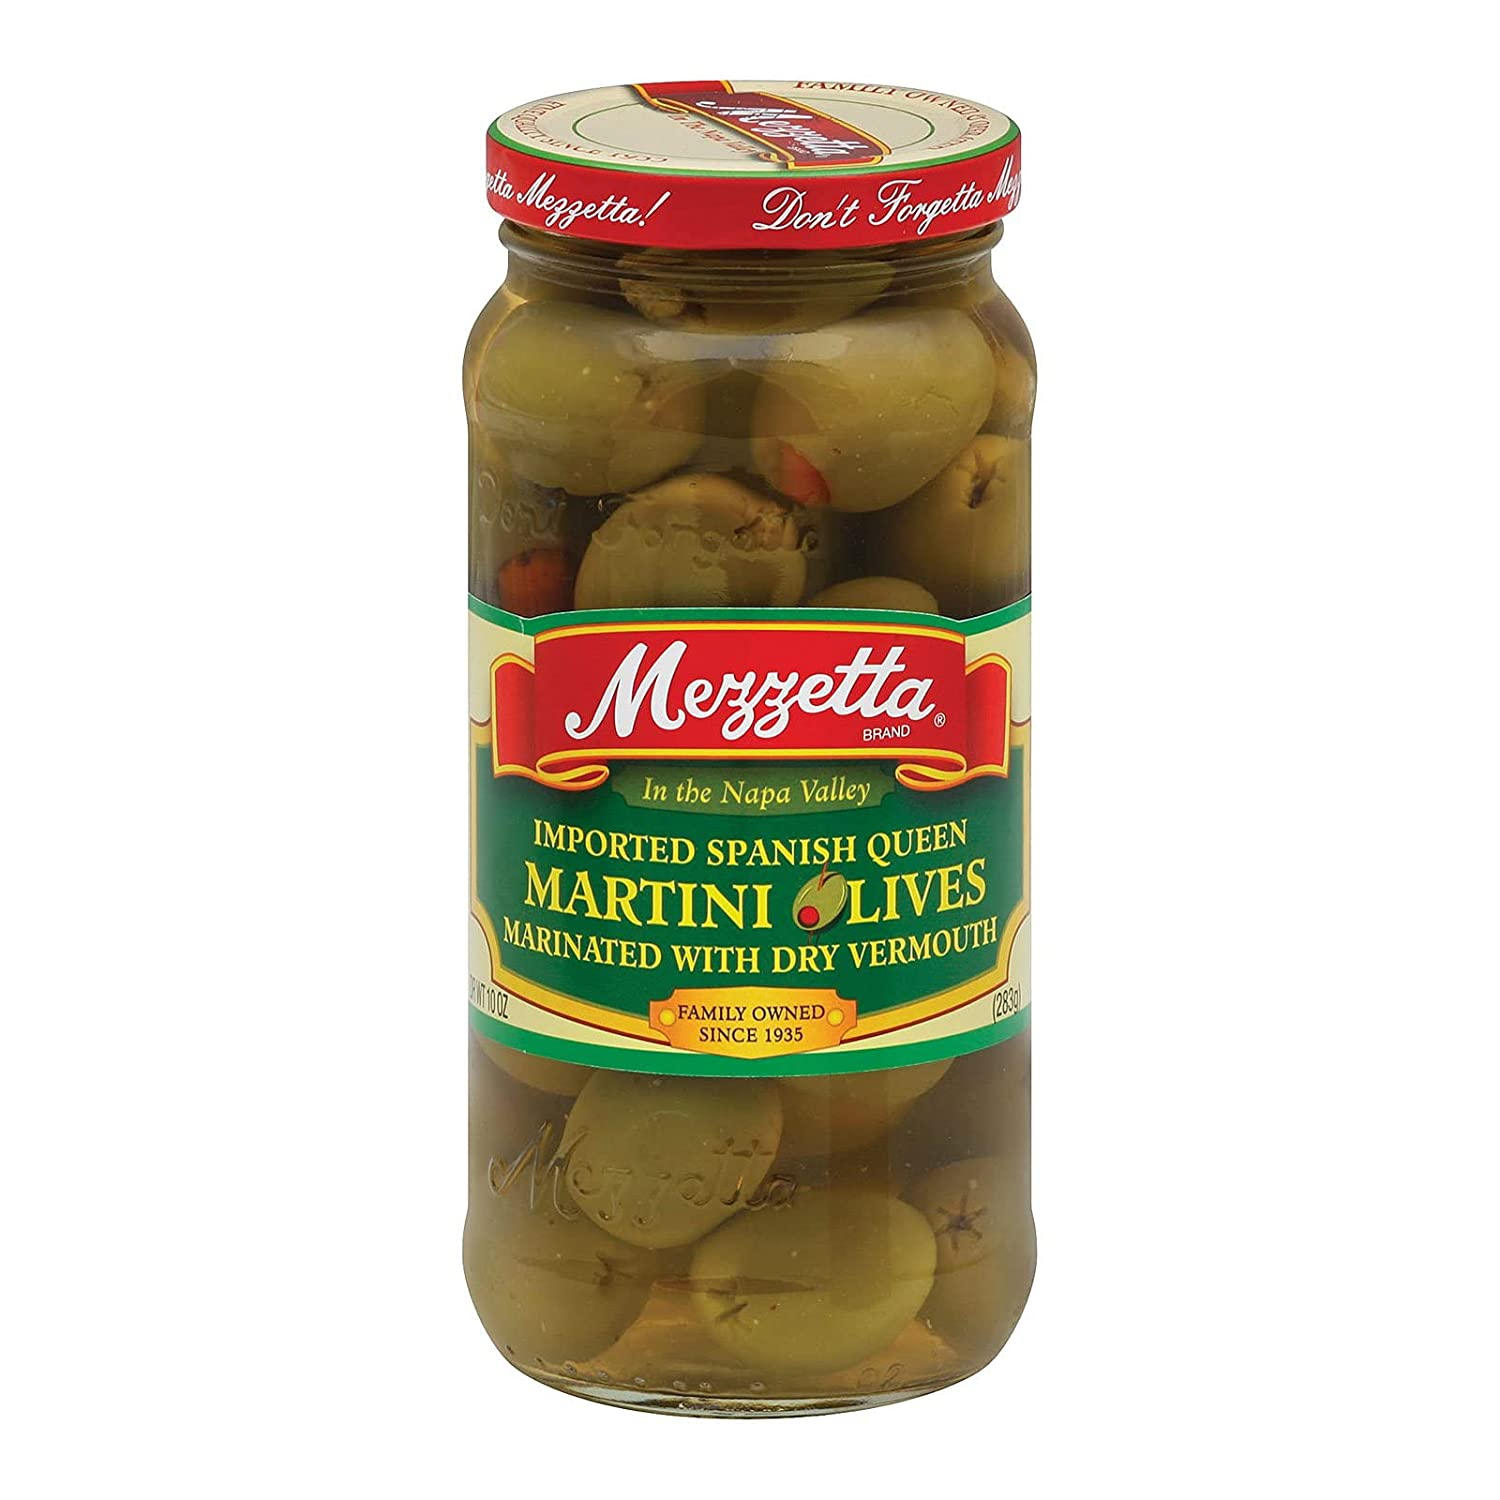 Martini Olives Max 64% OFF - 10 ounce 6 per case. New mail order